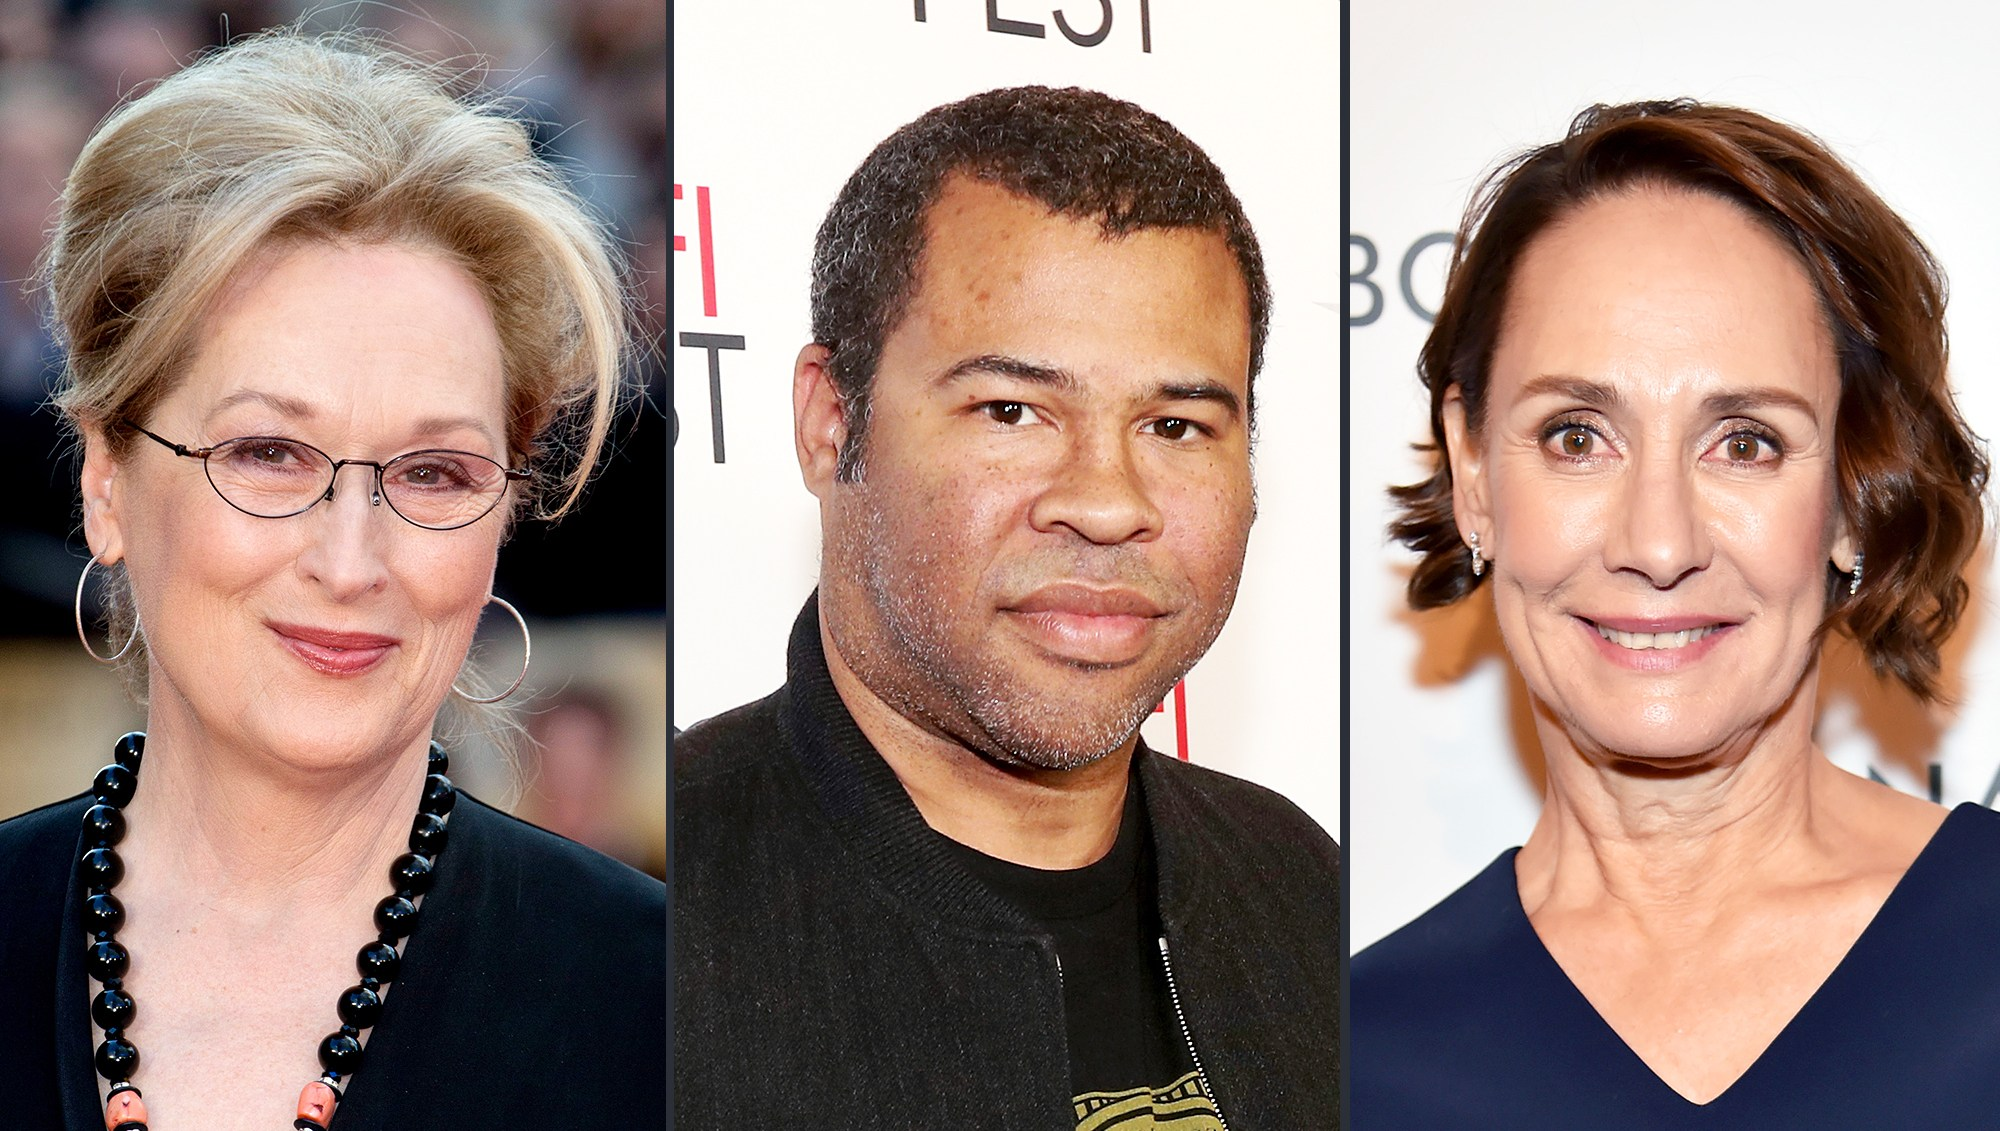 Meryl Streep Jordan Peele Laurie Metcalf Oscar Nomination Reactions